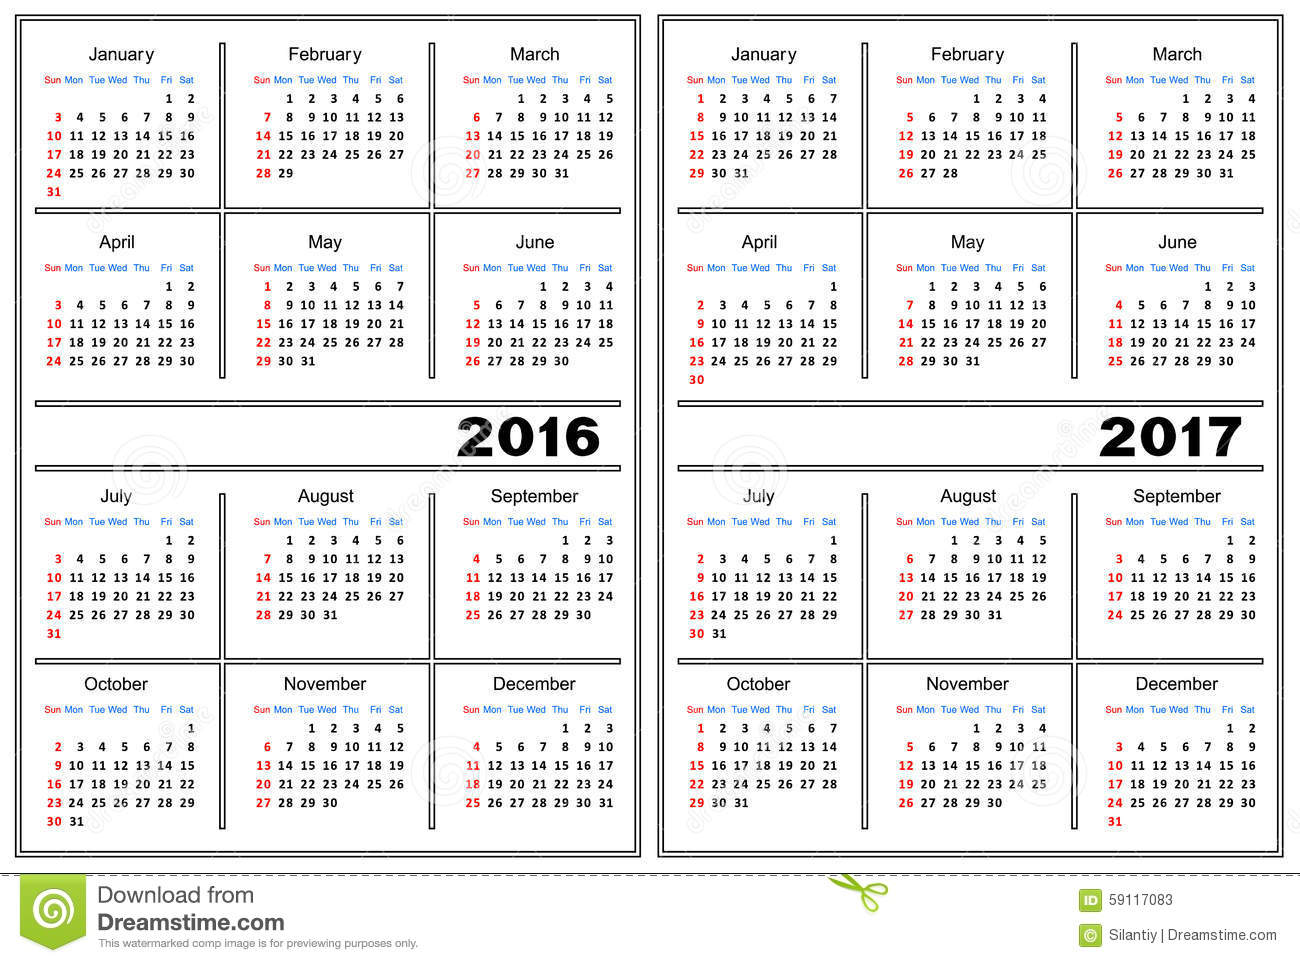 Calendar 2016 And 2017 Template from thumbs.dreamstime.com